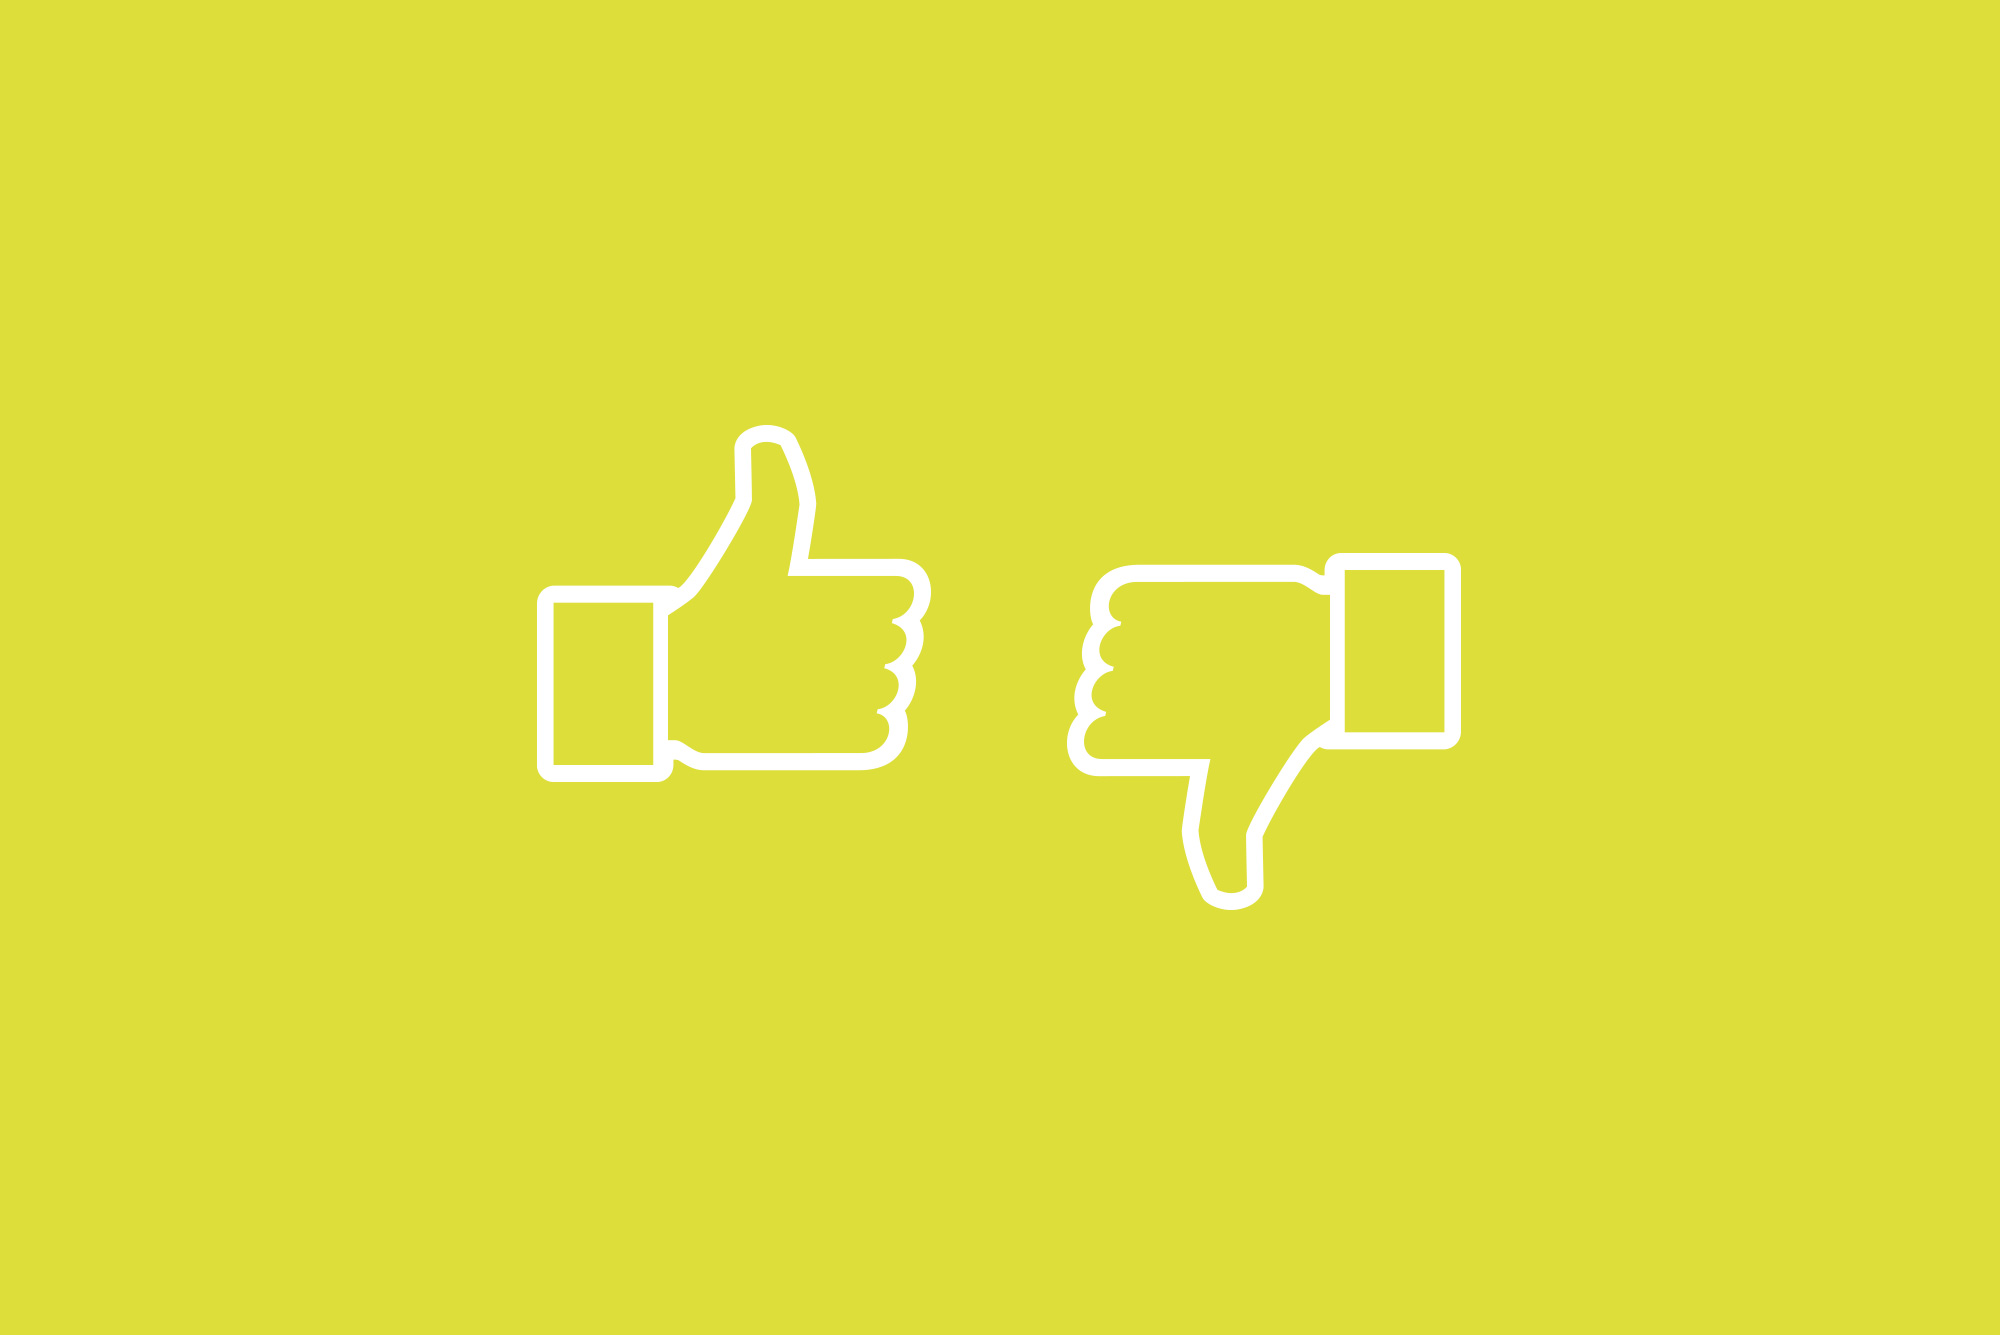 Do's and Don't of social media - a white thumbs up and thumbs down on a yellow background